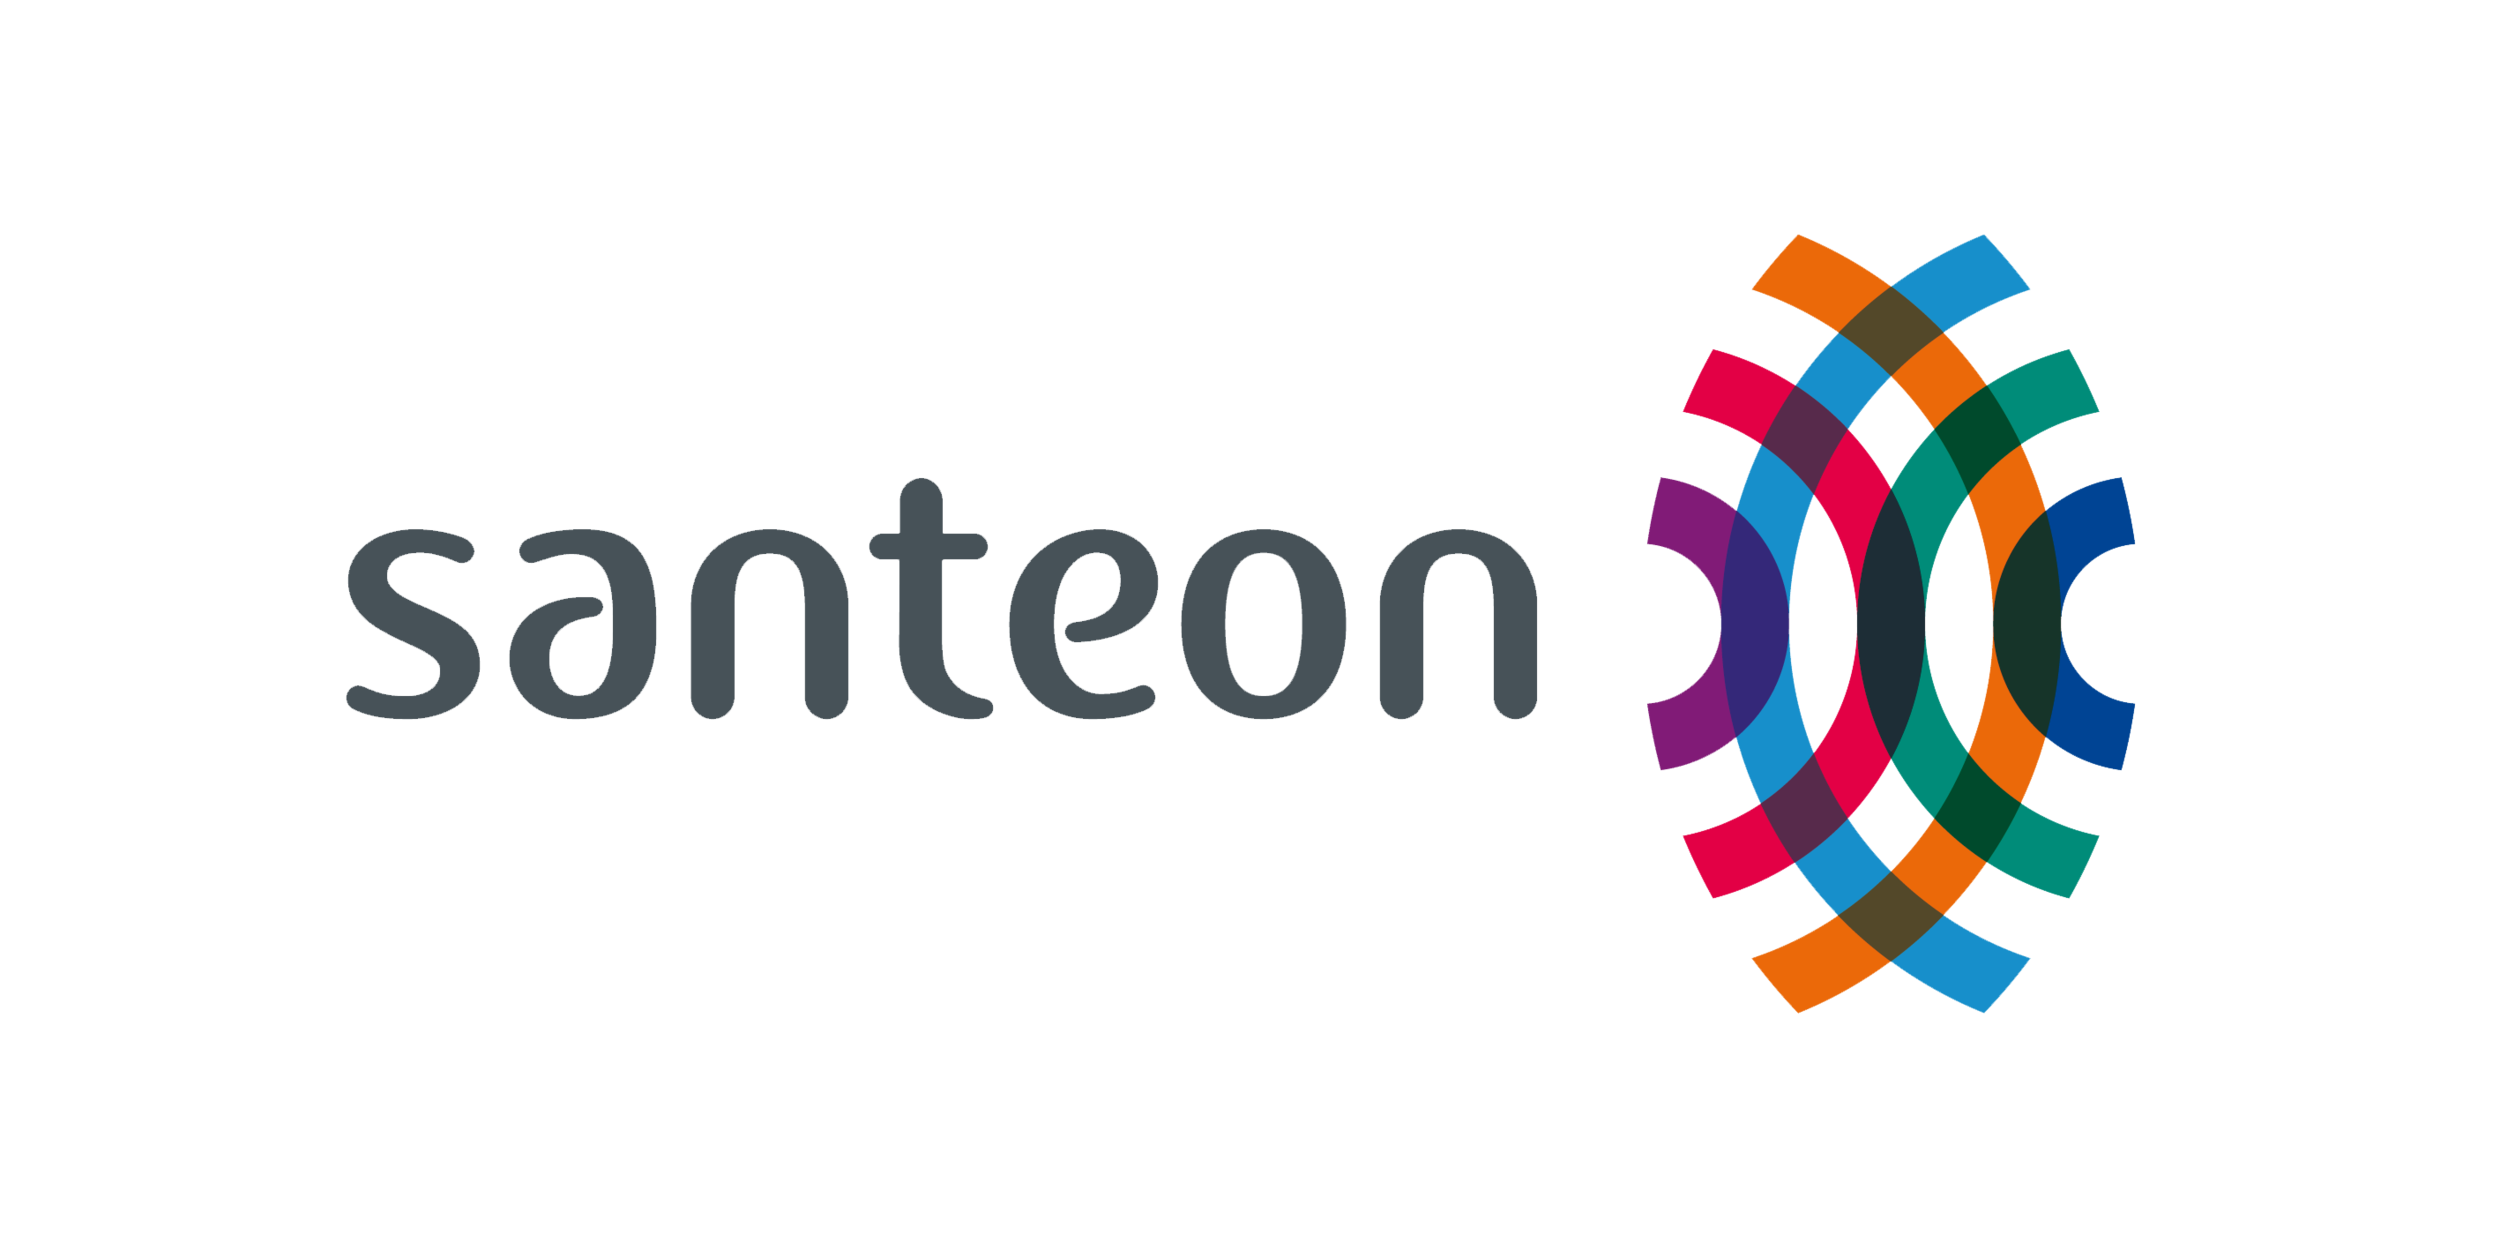 santeon logo_Clients_Transp.png